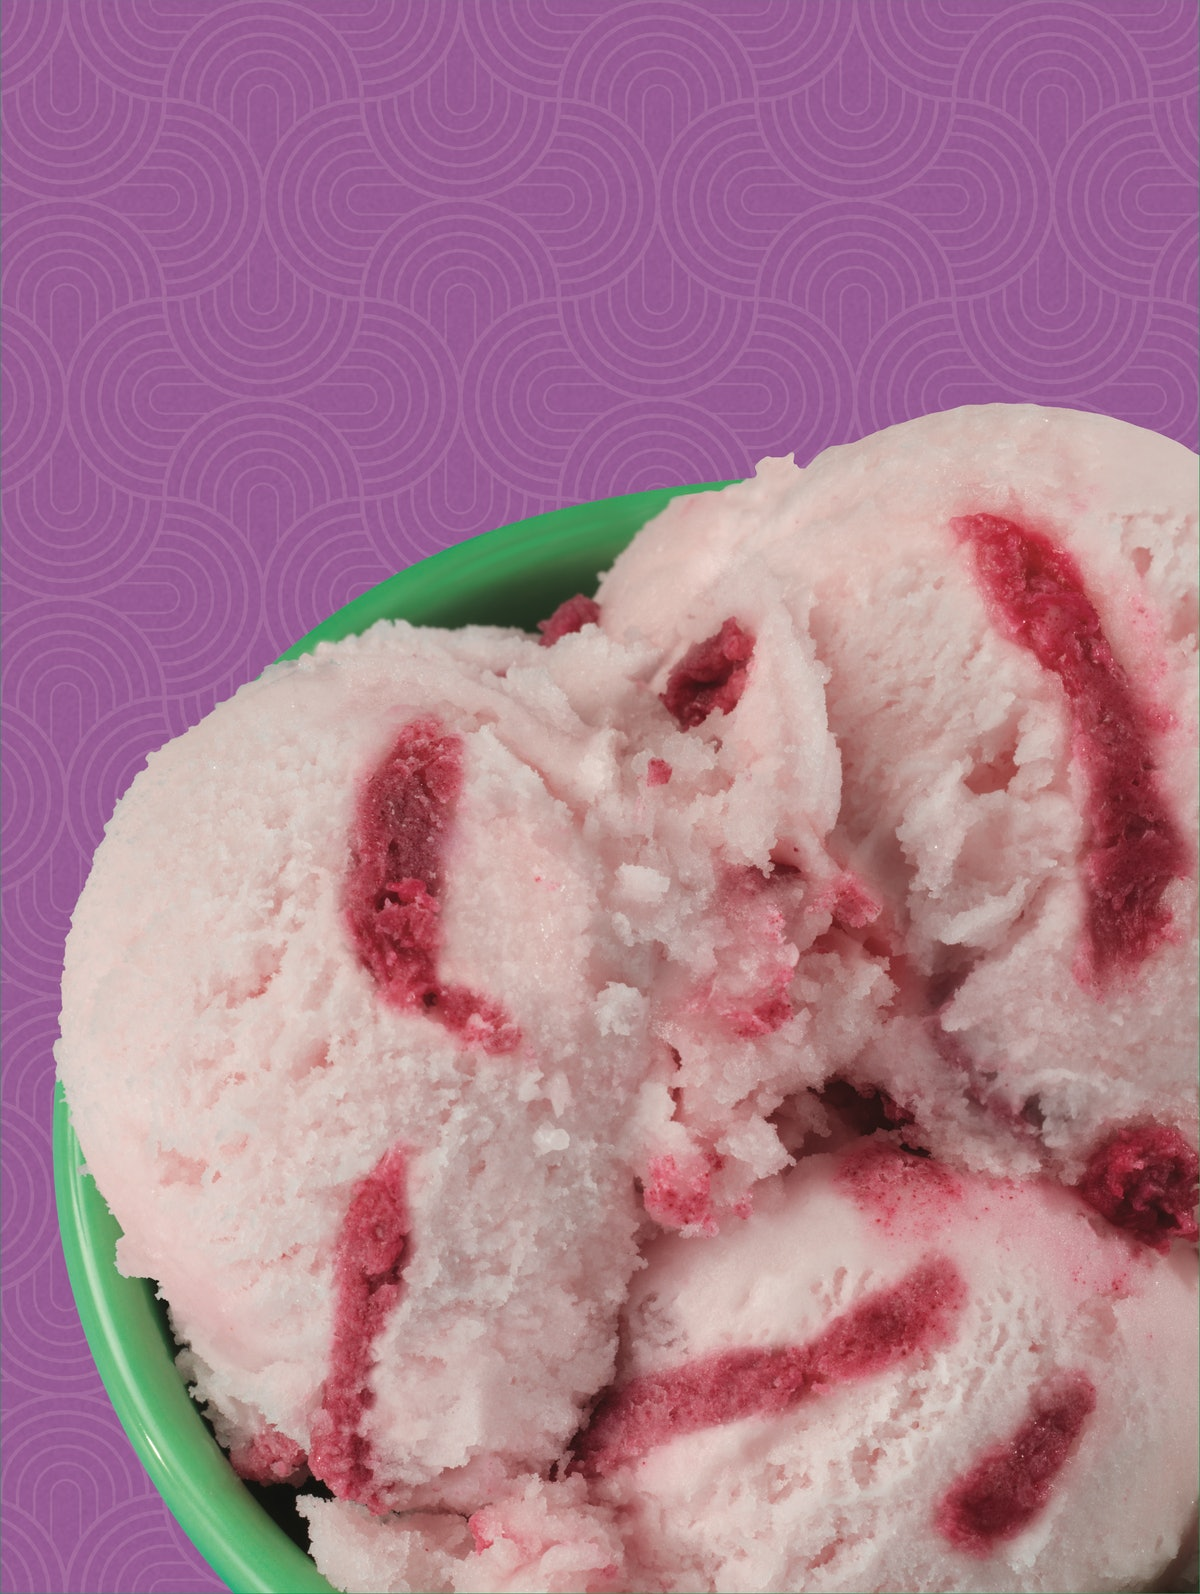 Baskin-Robbins' Watermelon Sorbet is a non-dairy offering.